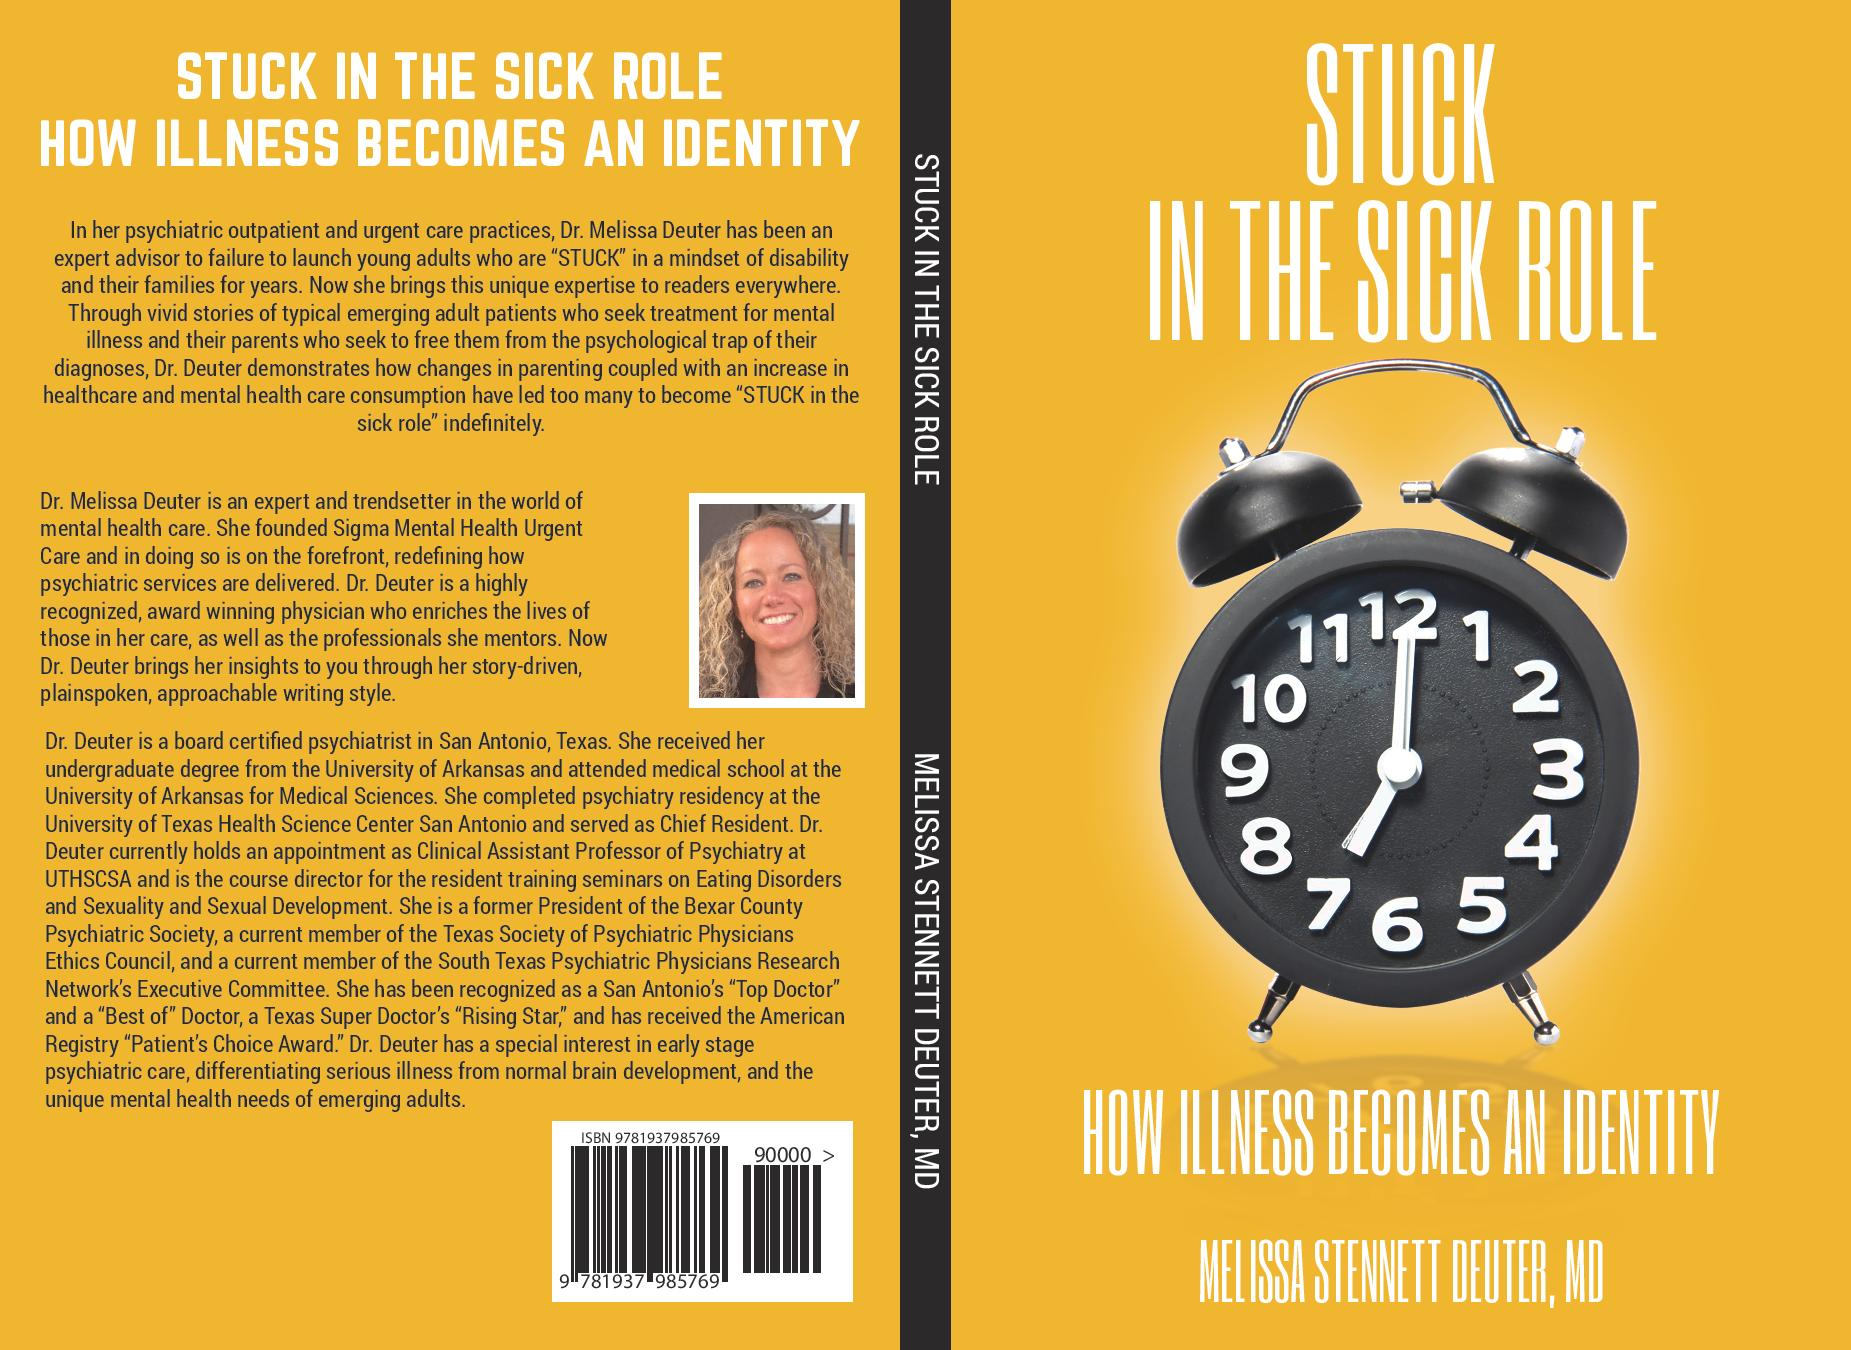 STUCK in the Sick Role: How Illness Becomes and Identity by Melissa Stennett Deuter, MD  Click here to find on Amazon:    https://www.amazon.com/Stuck-Sick-Role-Illness-Identity/dp/1937985768